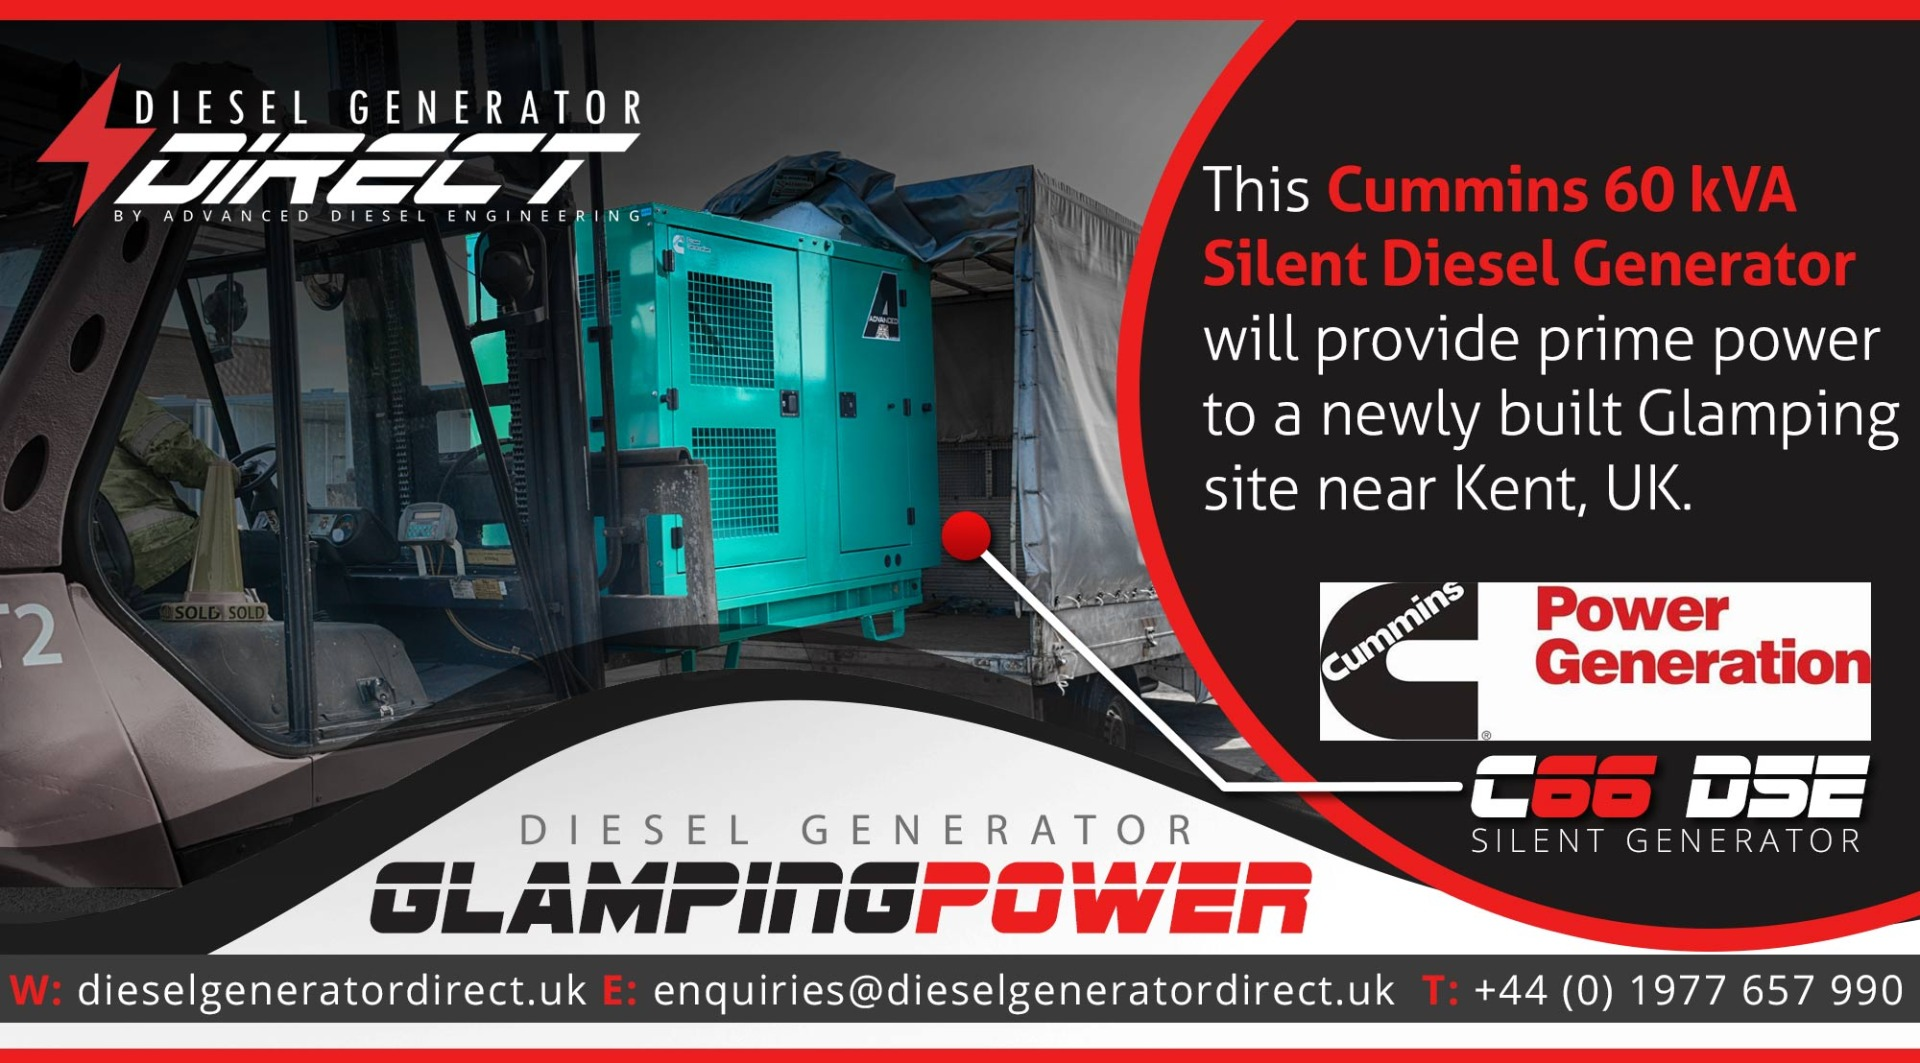 cummins 60kVA silent generator for glamping site